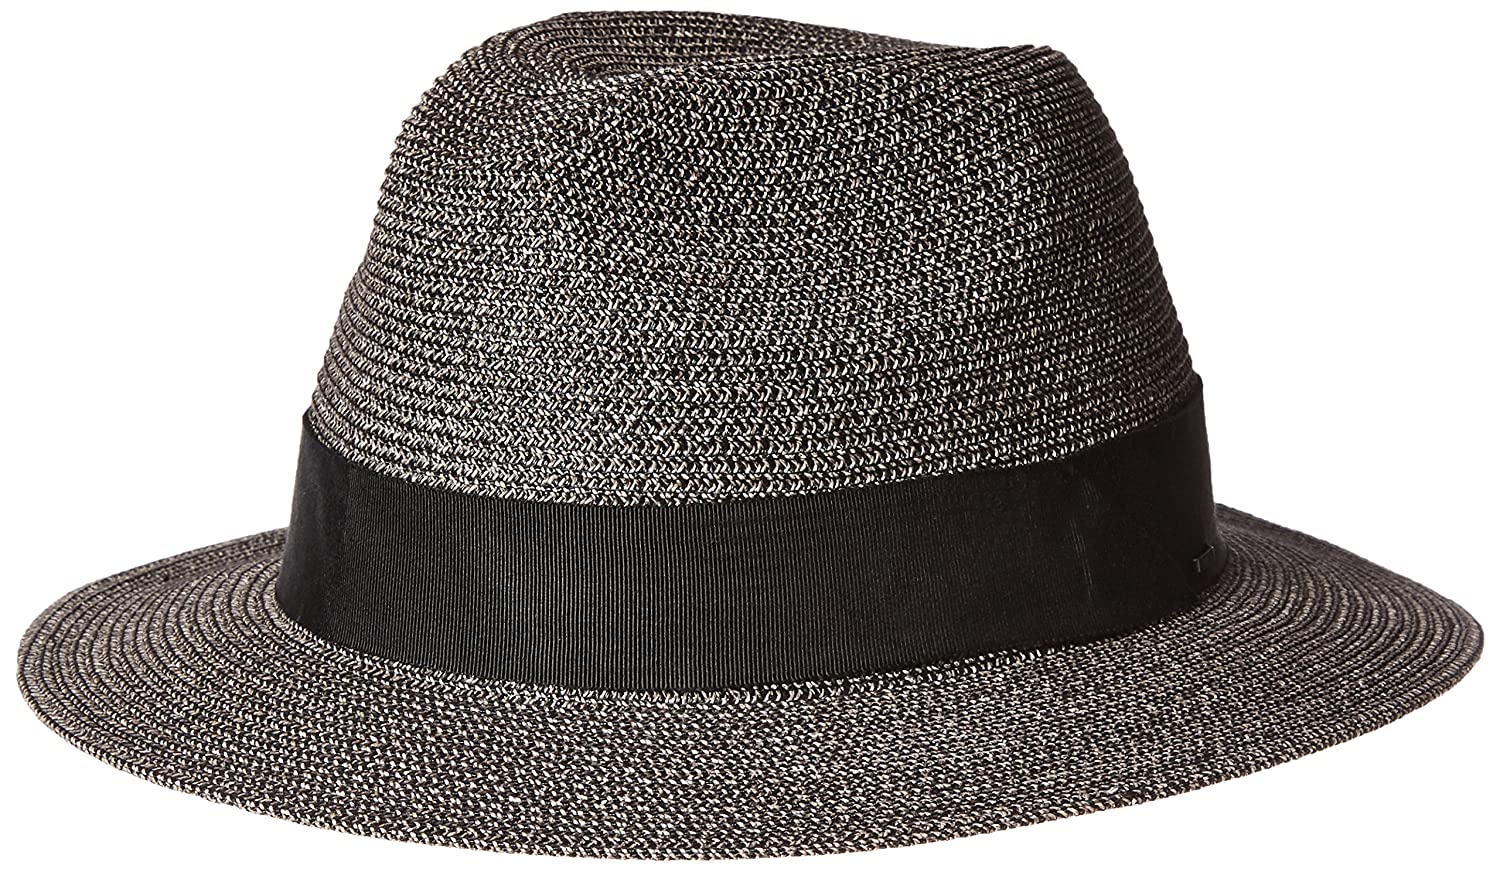 Bailey Fedora Wilshire Black Bailey of Hollywood Straw Hats Summer Hat Trilby